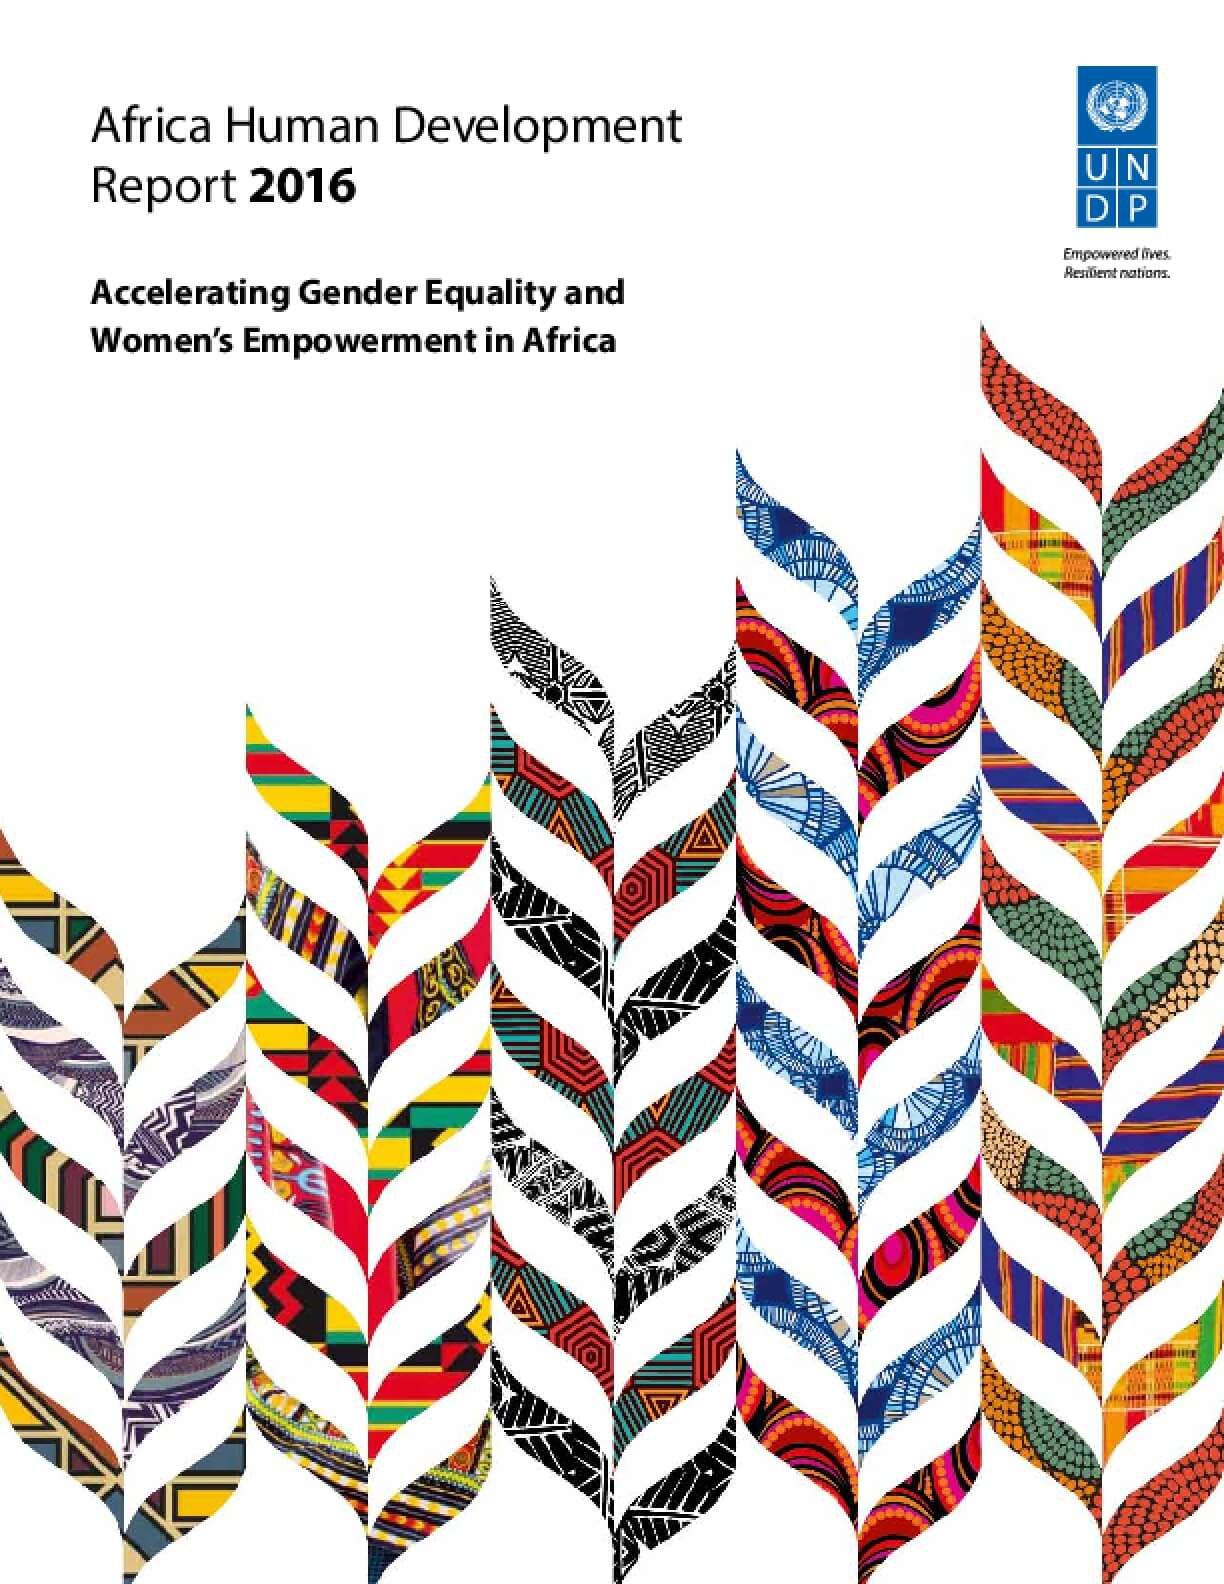 Africa Human Development Report 2016